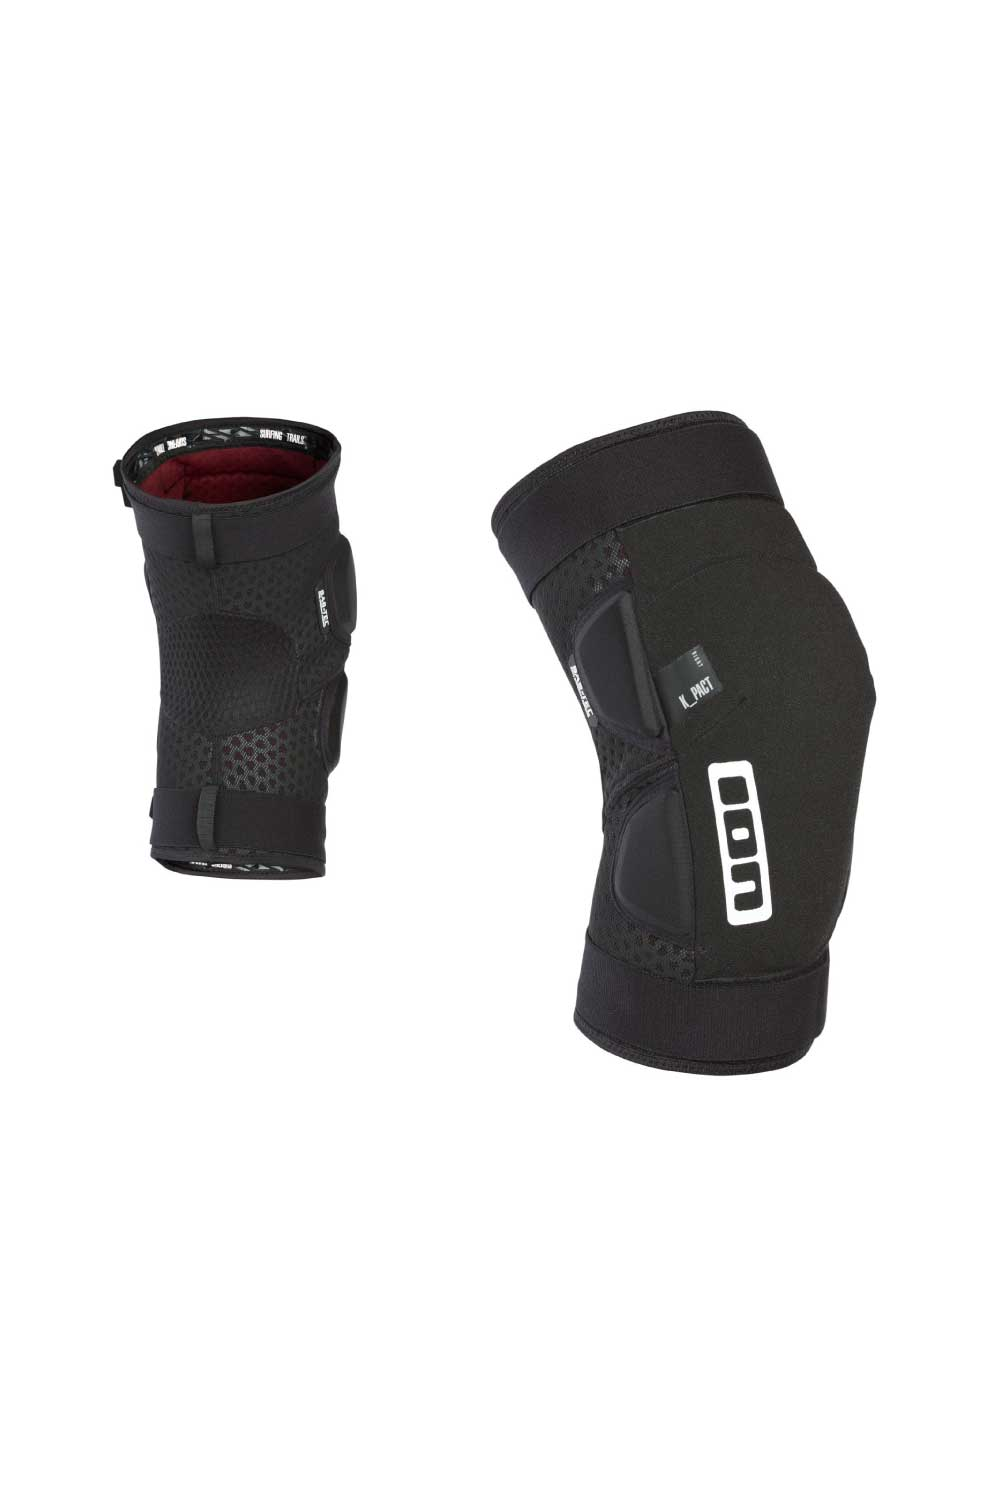 ION K-Pact Knee Mountain Bike Pads